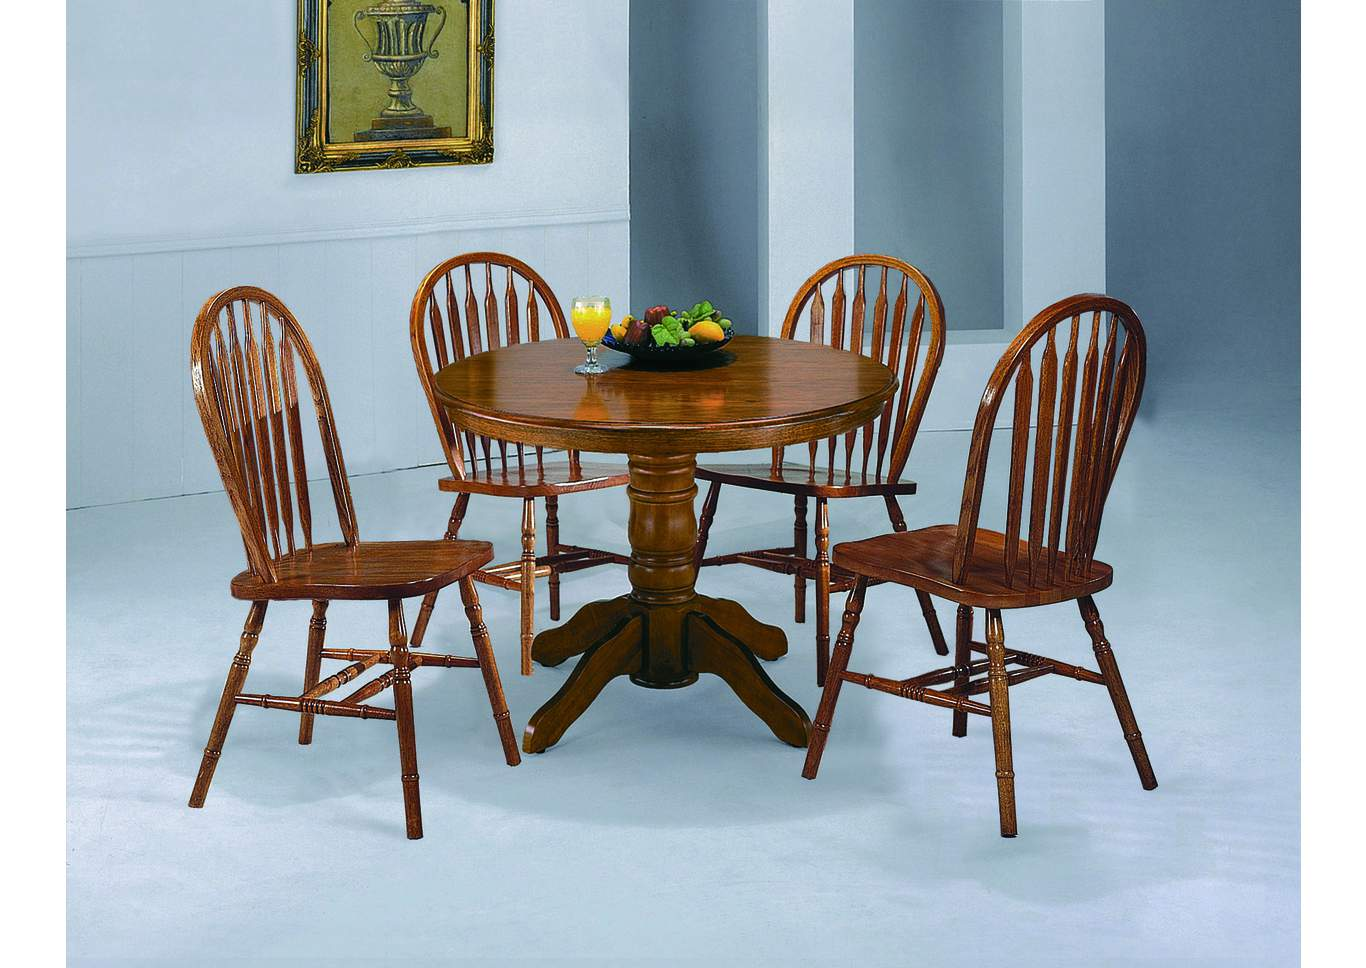 Dark Oak Arrow Windsor Chair 38 H,Crown Mark